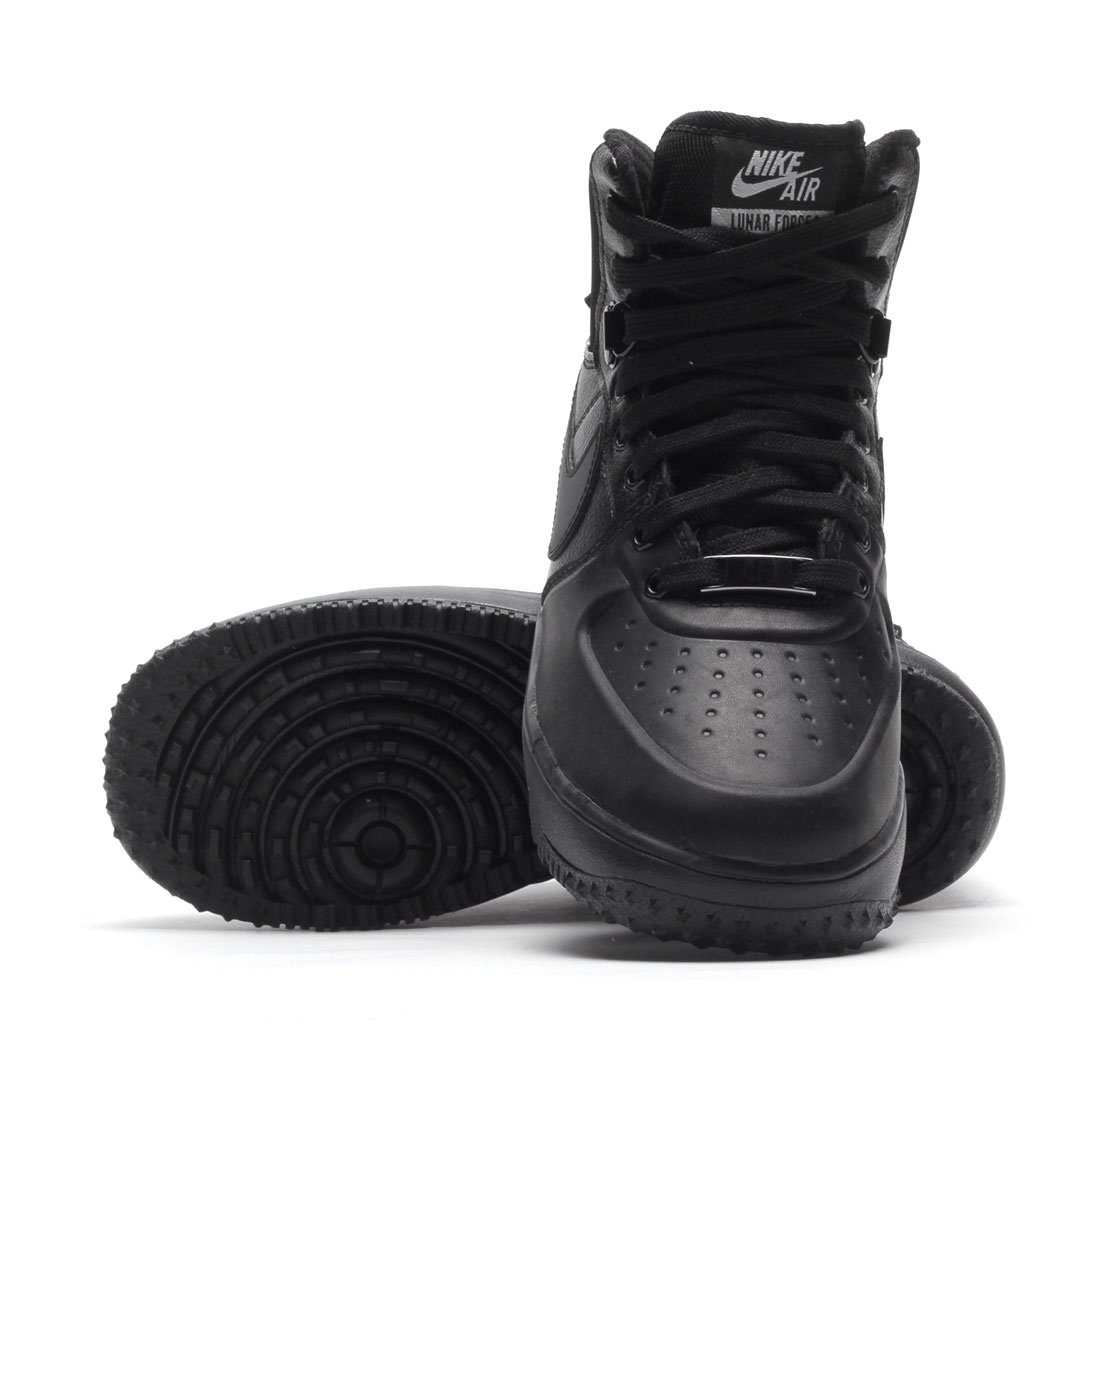 Nike Lunar Force 1 Sneakerboot (GS) Black/Black-Metallic Silver (4.5Y) by Nike (Image #4)